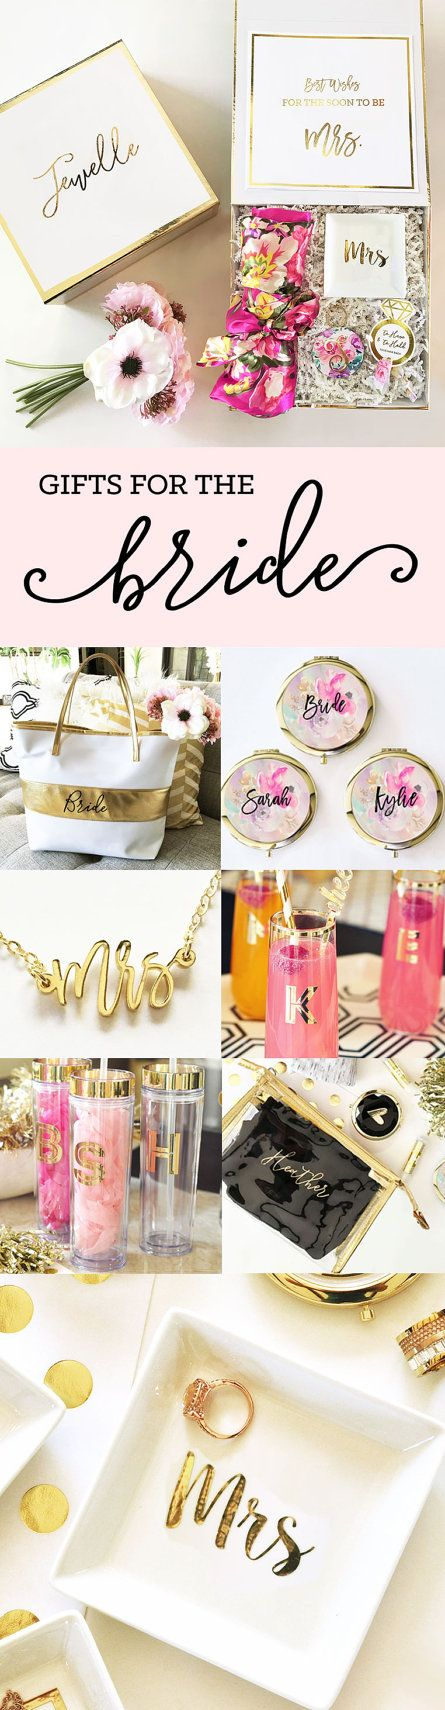 Bride Gifts | Bridal Shower Gift for Bride to Be | Future Mrs Gifts | Engagement Gift Basket for Bride | Bride Gift Ideas